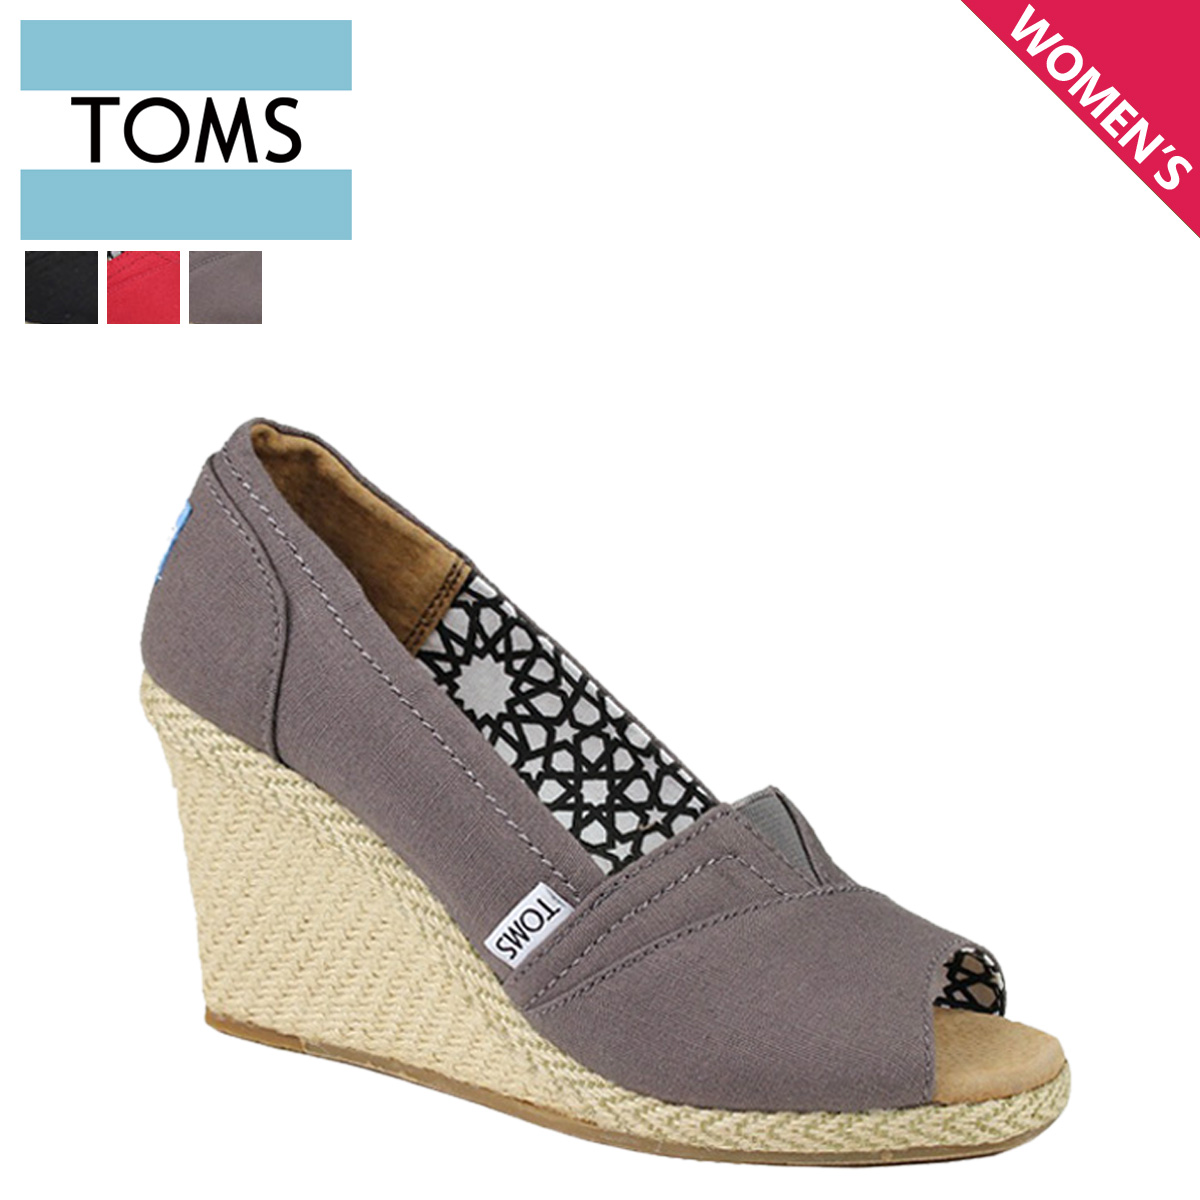 ALLSPORTS: Thoms shoes TOMS SHOES Lady's sandals CALYPSO CANVAS WOMEN'S WEDGES Tom's Thoms shoes | Rakuten Global Market